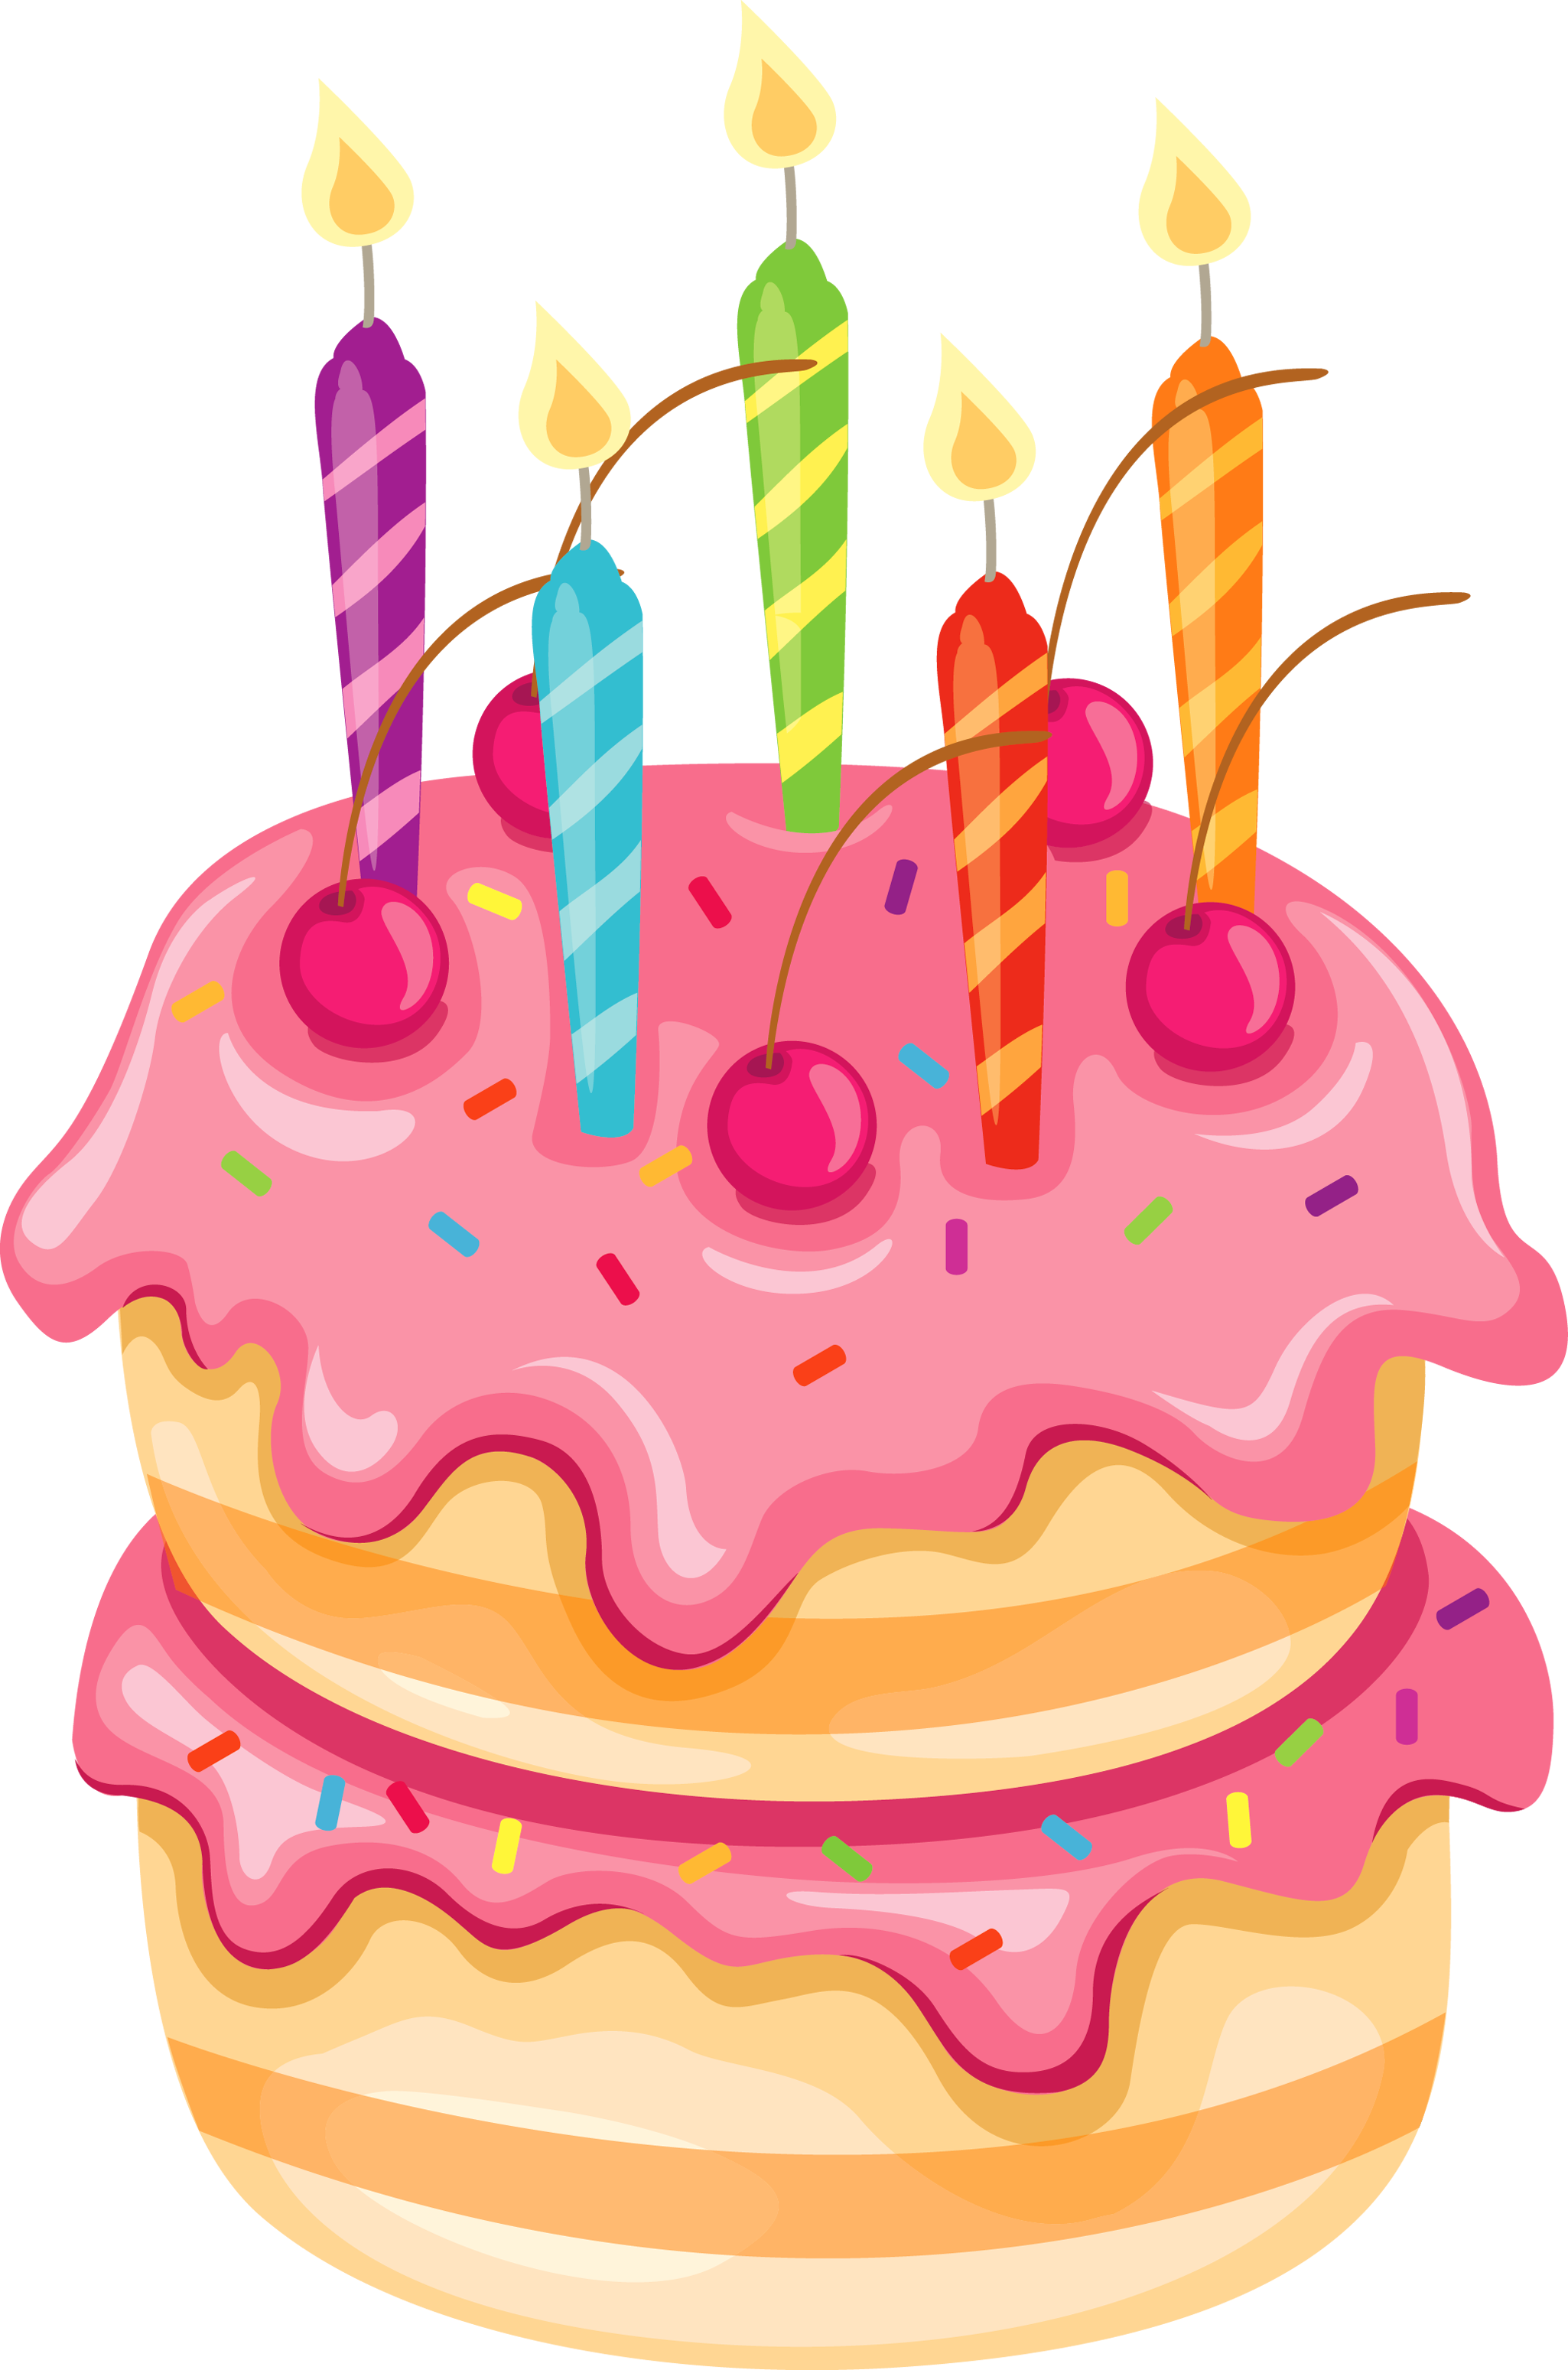 Pink with candles png. Clipart cake whimsical